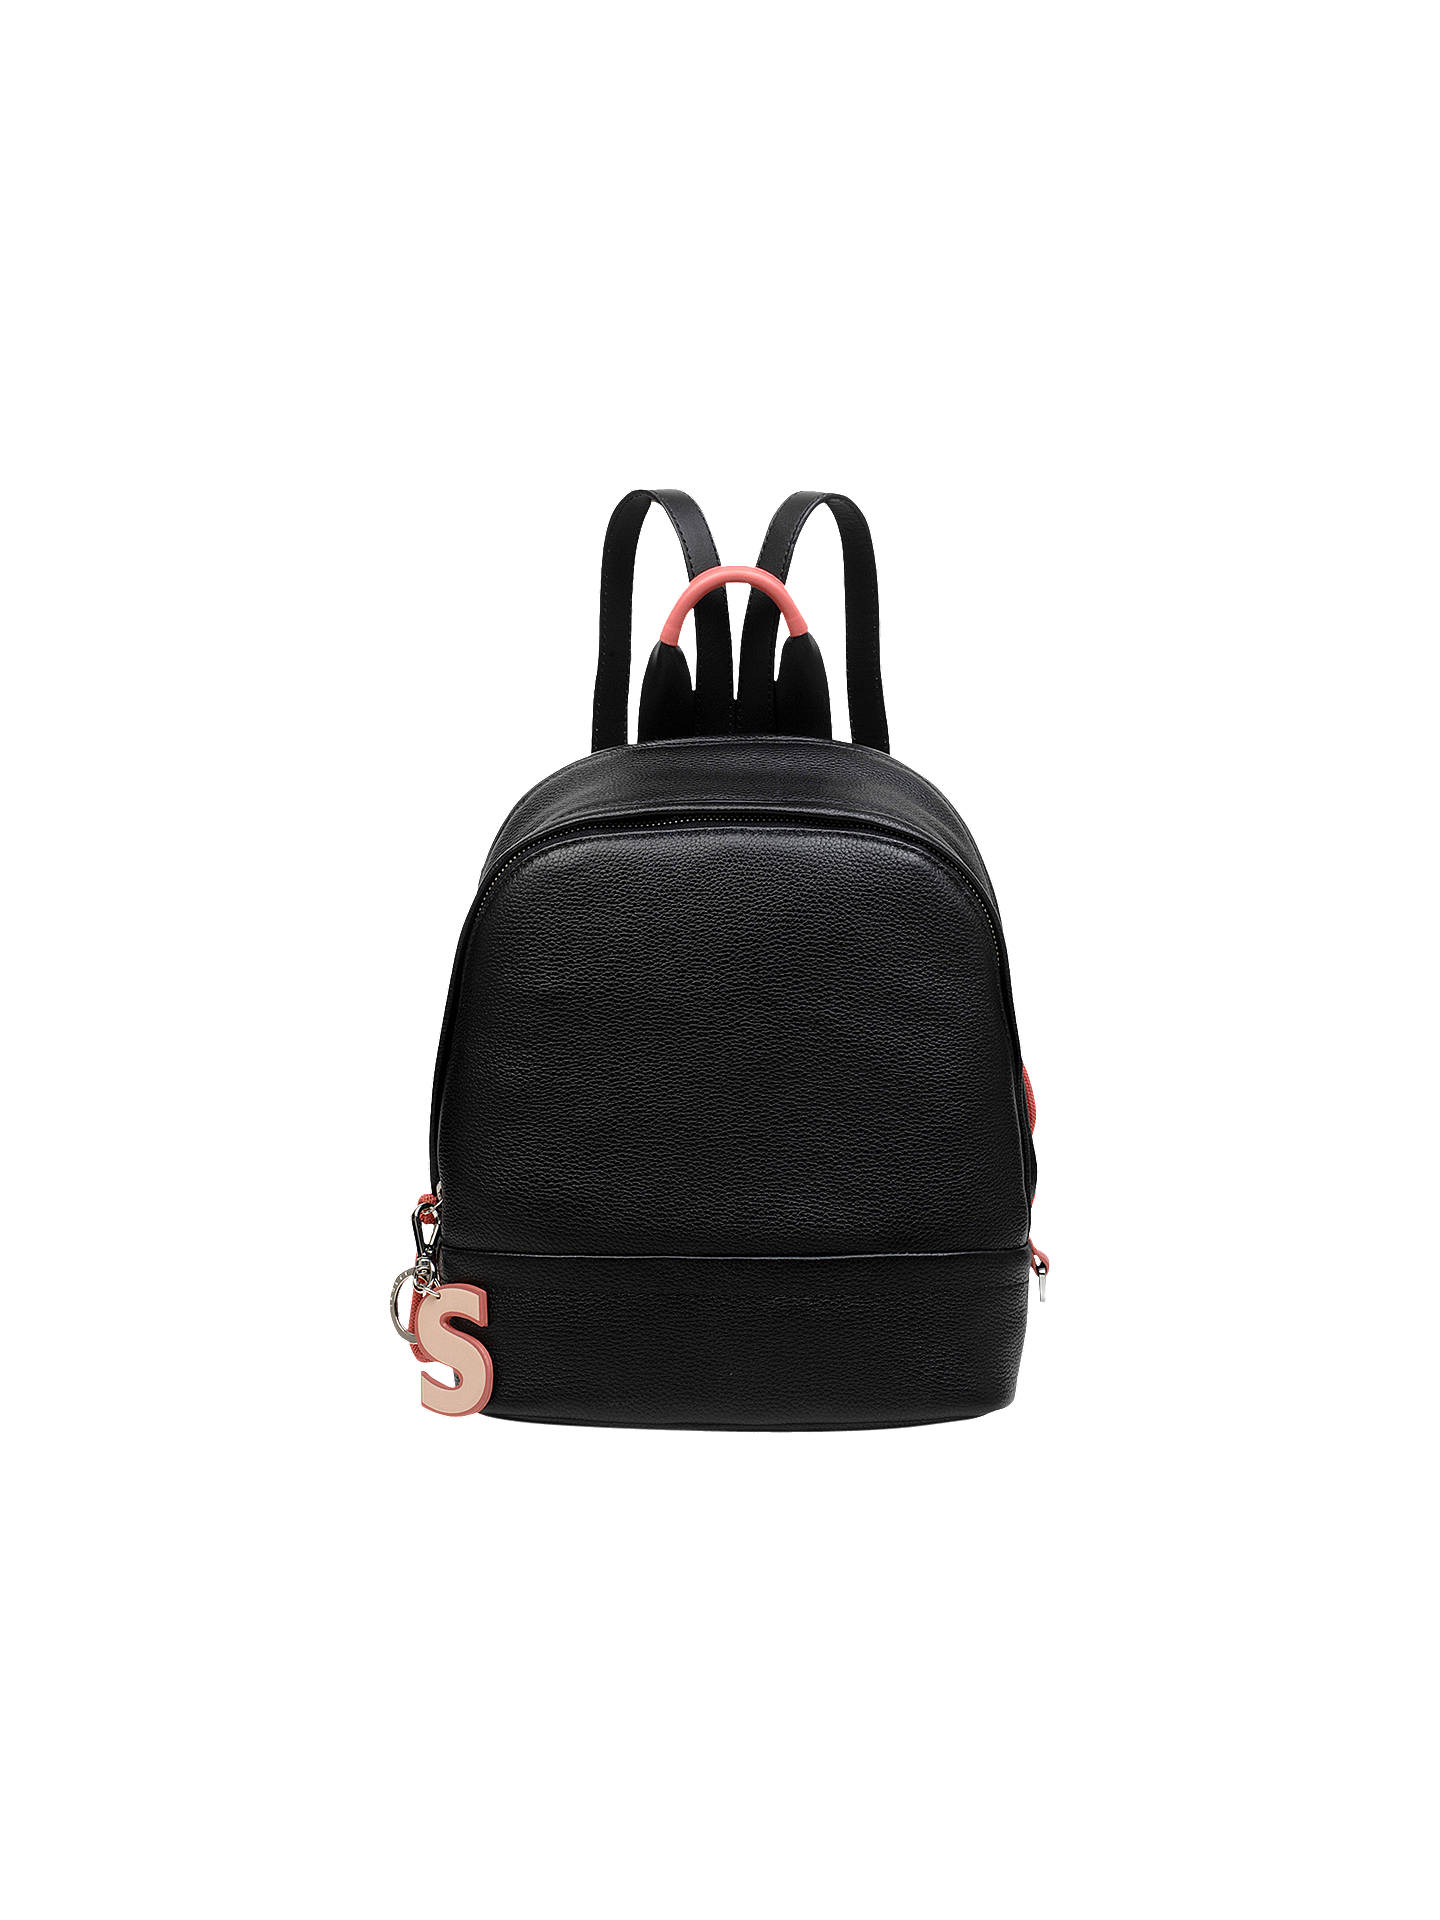 BuyRadley Flex Small Leather Zip Around Backpack, Black Online at johnlewis.com